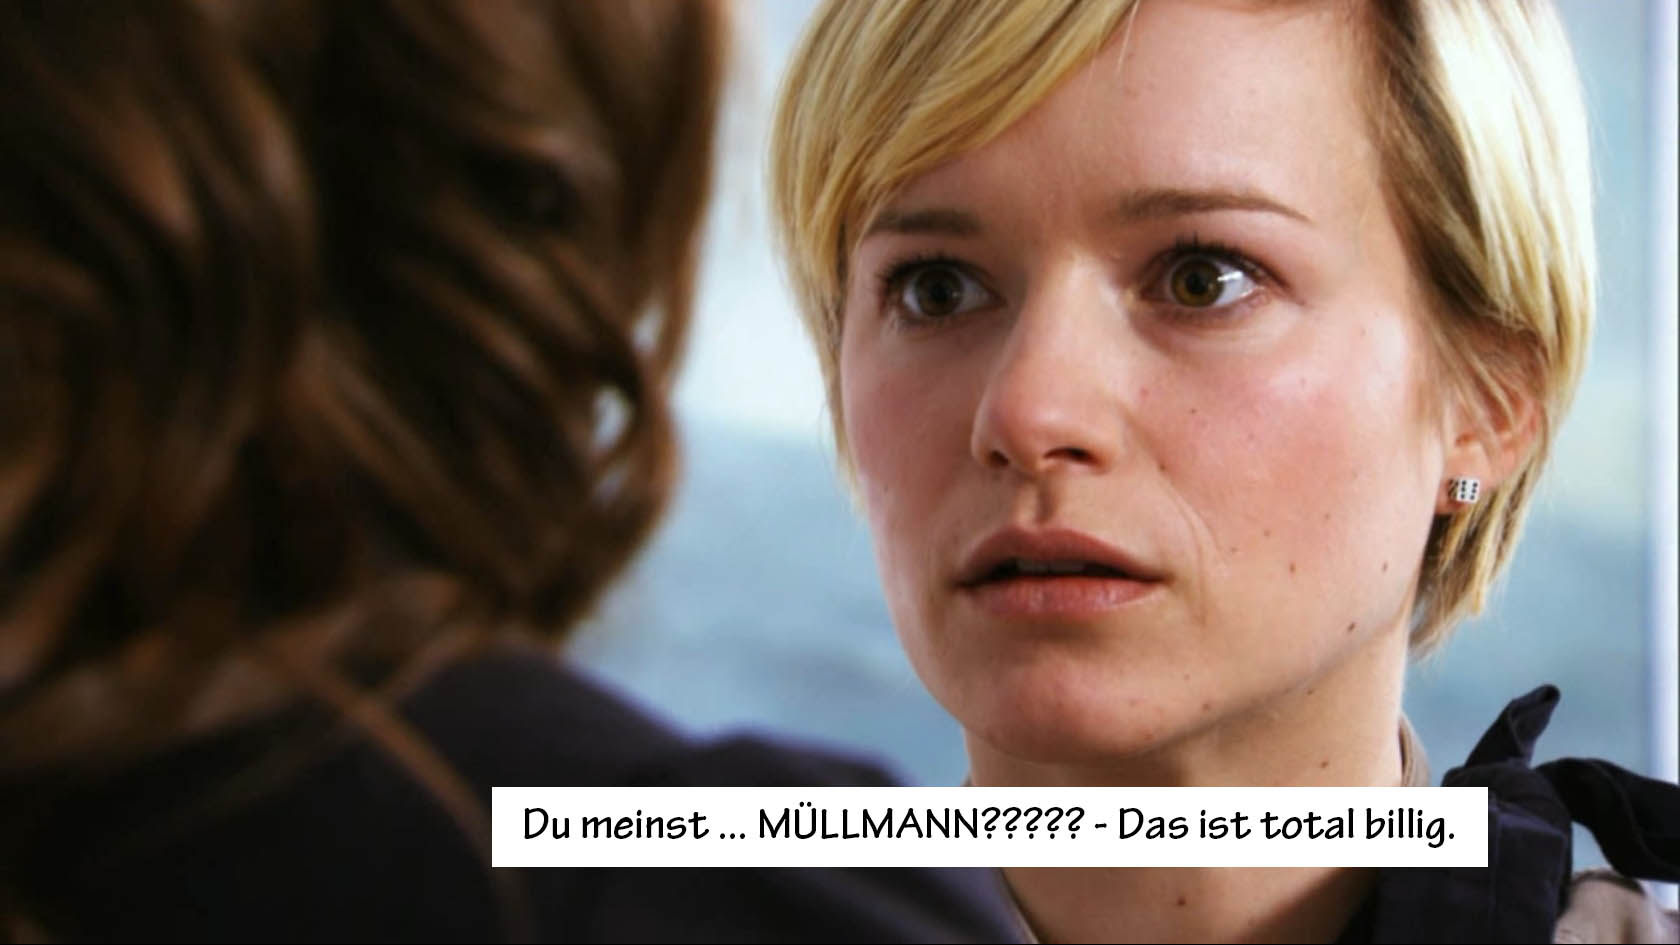 E: You mean … MÜLLMANN???? (= garbage collector) - That's totally trashy.